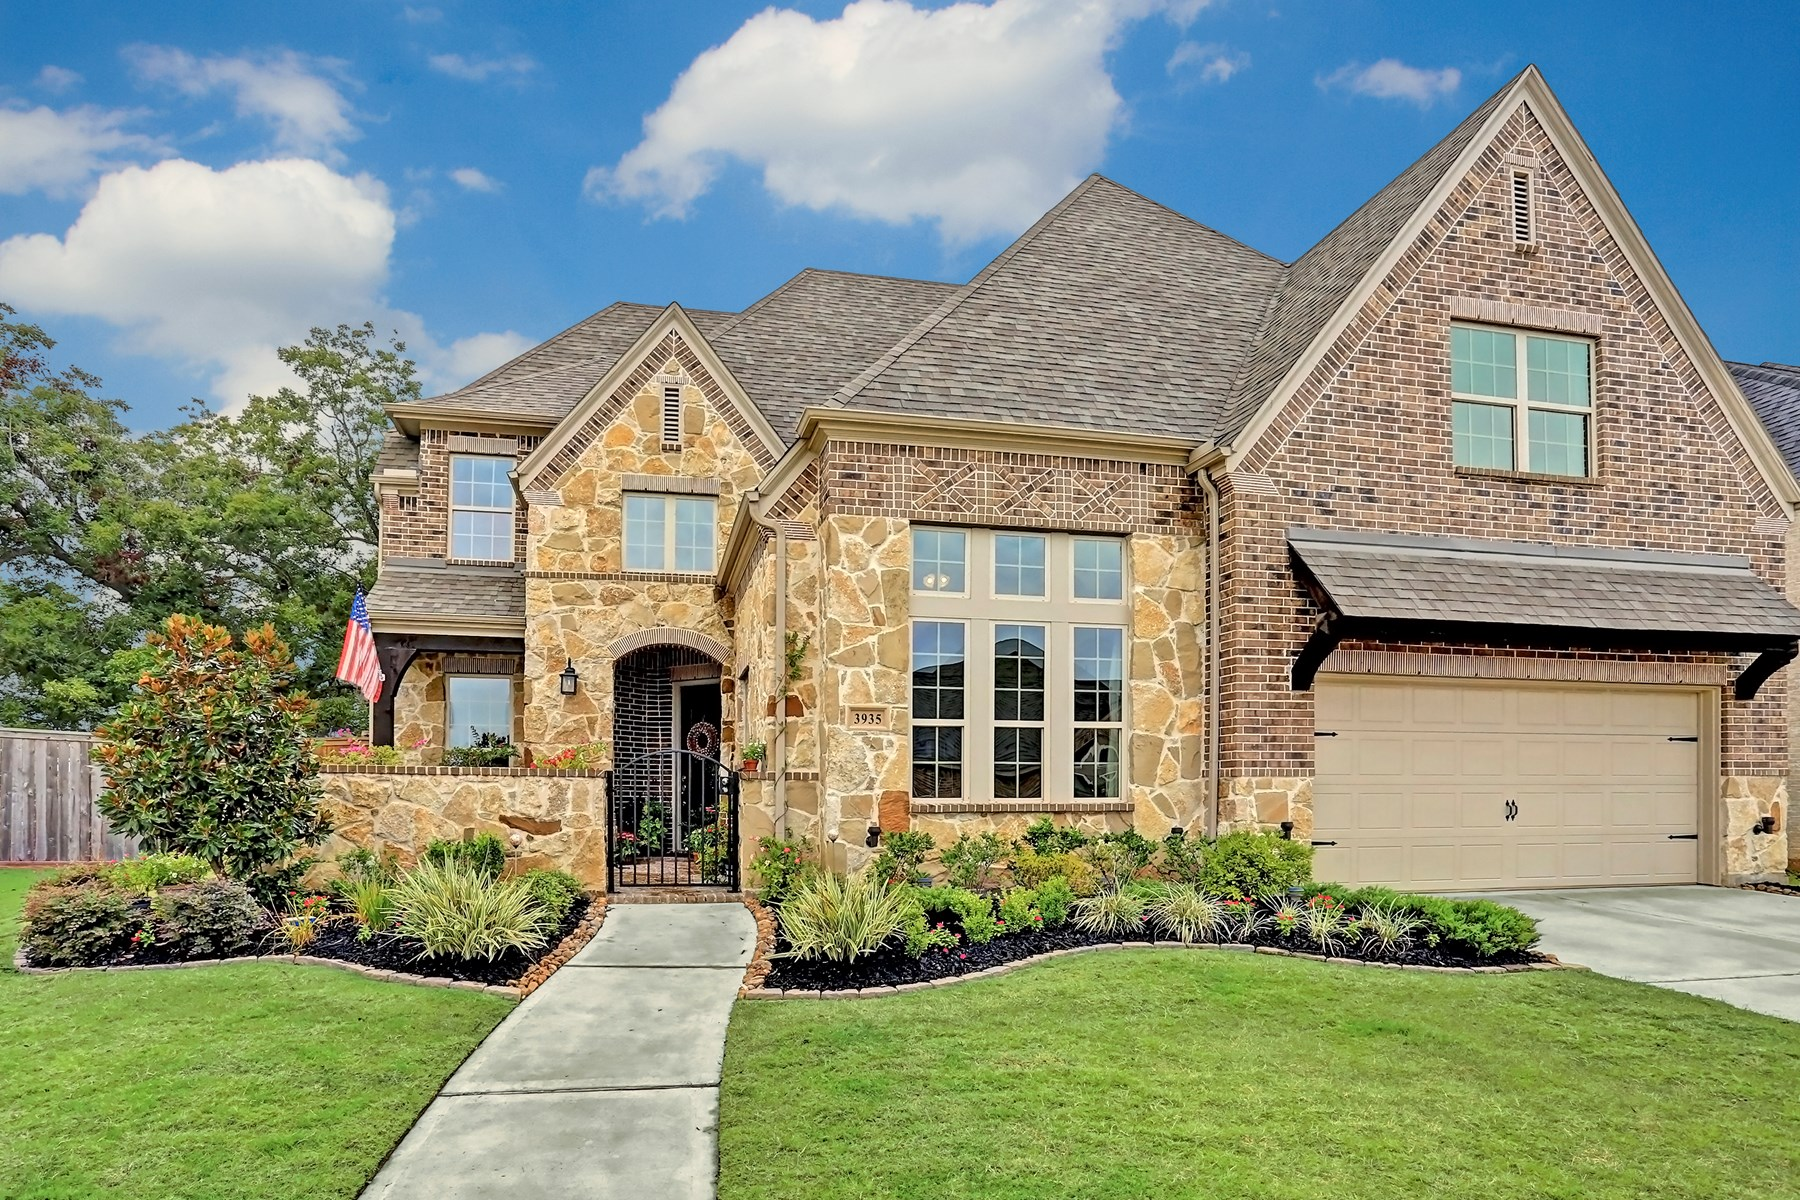 Single Family Home for Sale at 3935 Orchard Arbor Lane Sugar Land, Texas 77479 United States